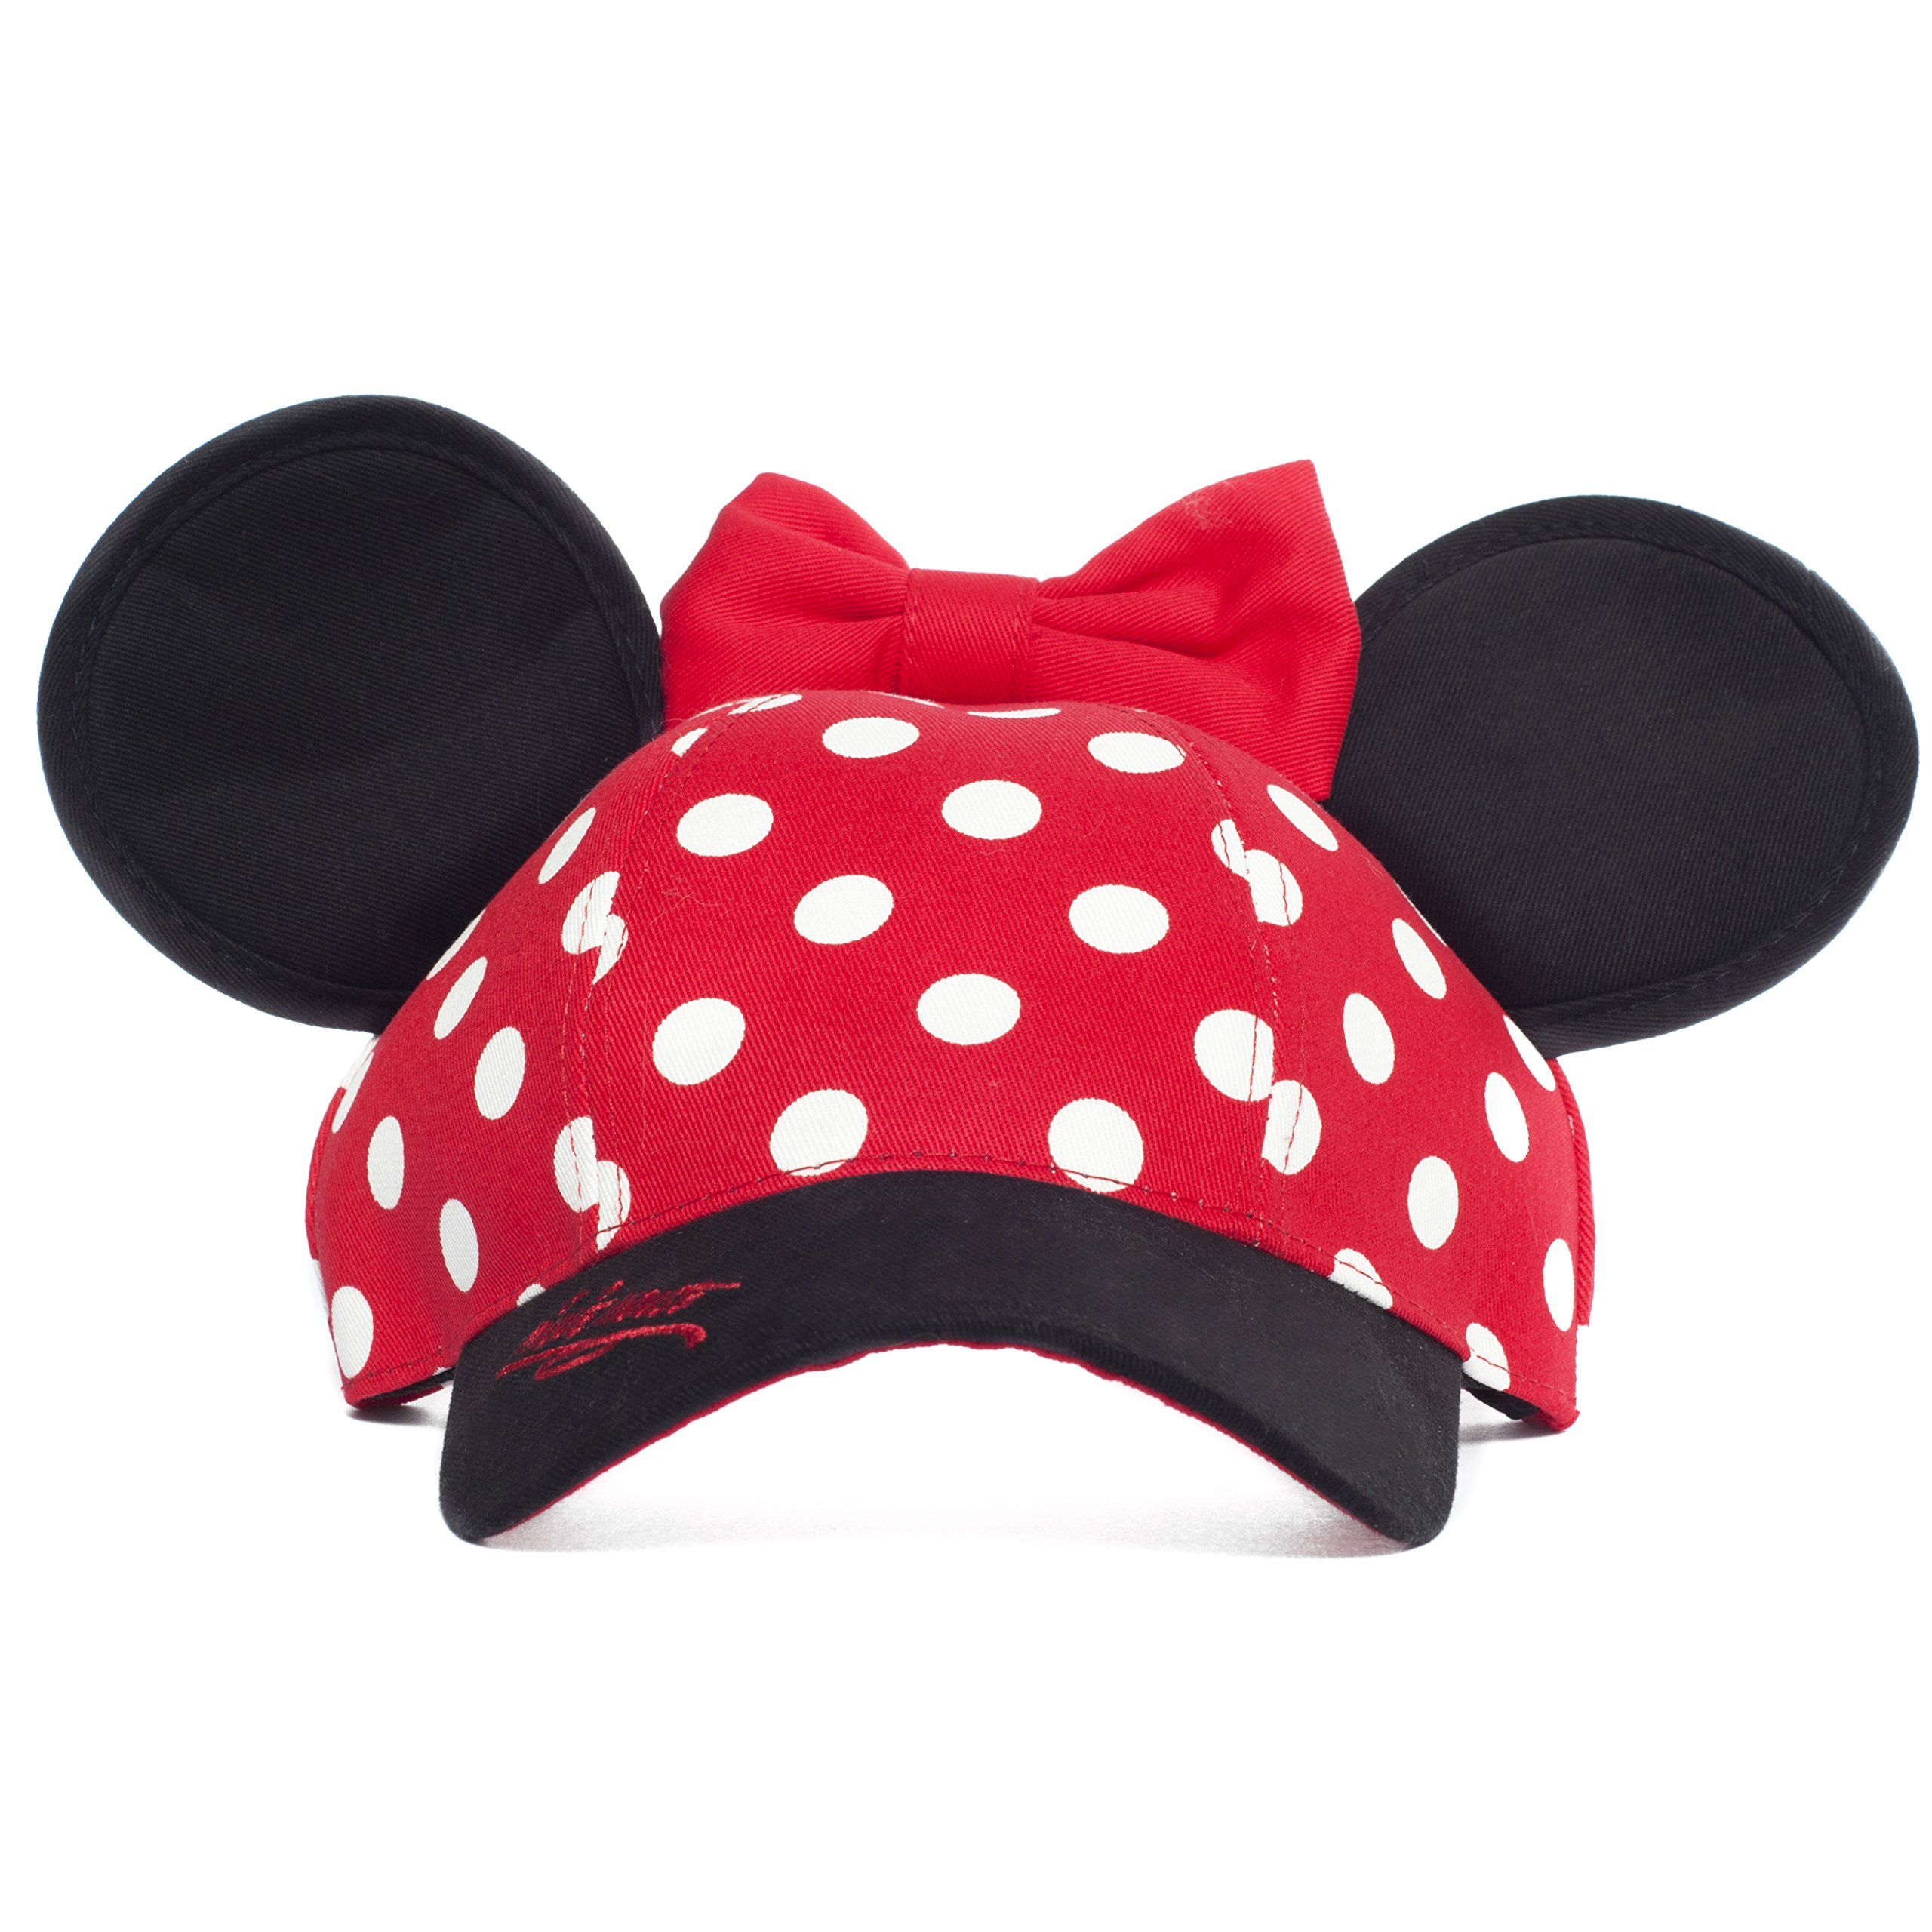 (Youth Size)Minnie Mouse Disneyland Polka Dot Snapback Cap with Ears -  Disney Parks Exclusive e8f7344ce083